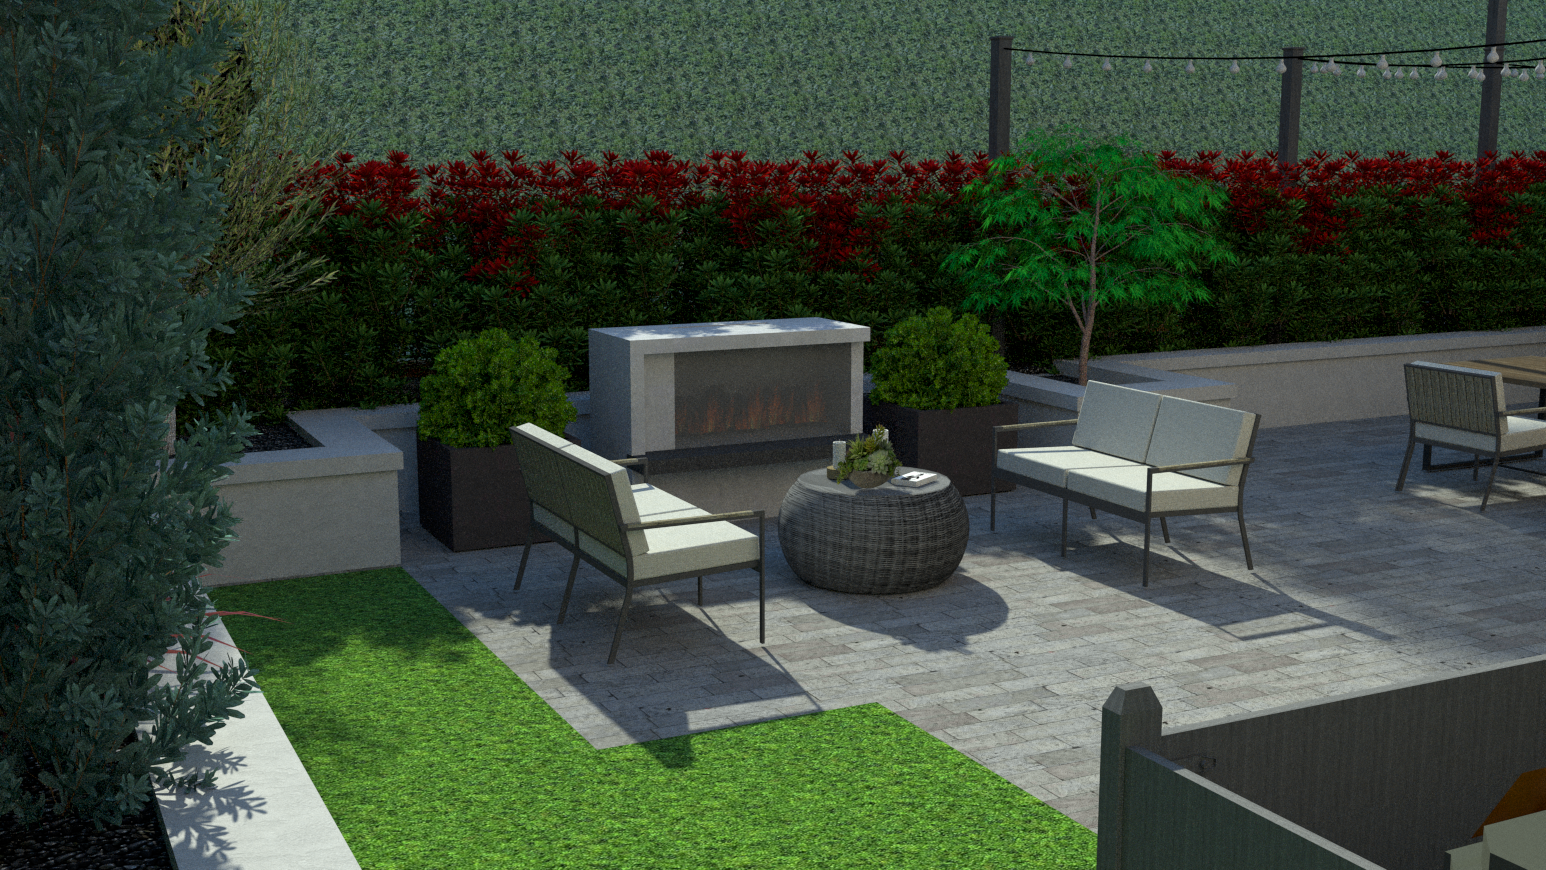 AutoSave_AutoSave_BARNEY, JEFF AND KATHIE_BACK GARDEN_for sketchup_12-14-2018-Scene 15.png